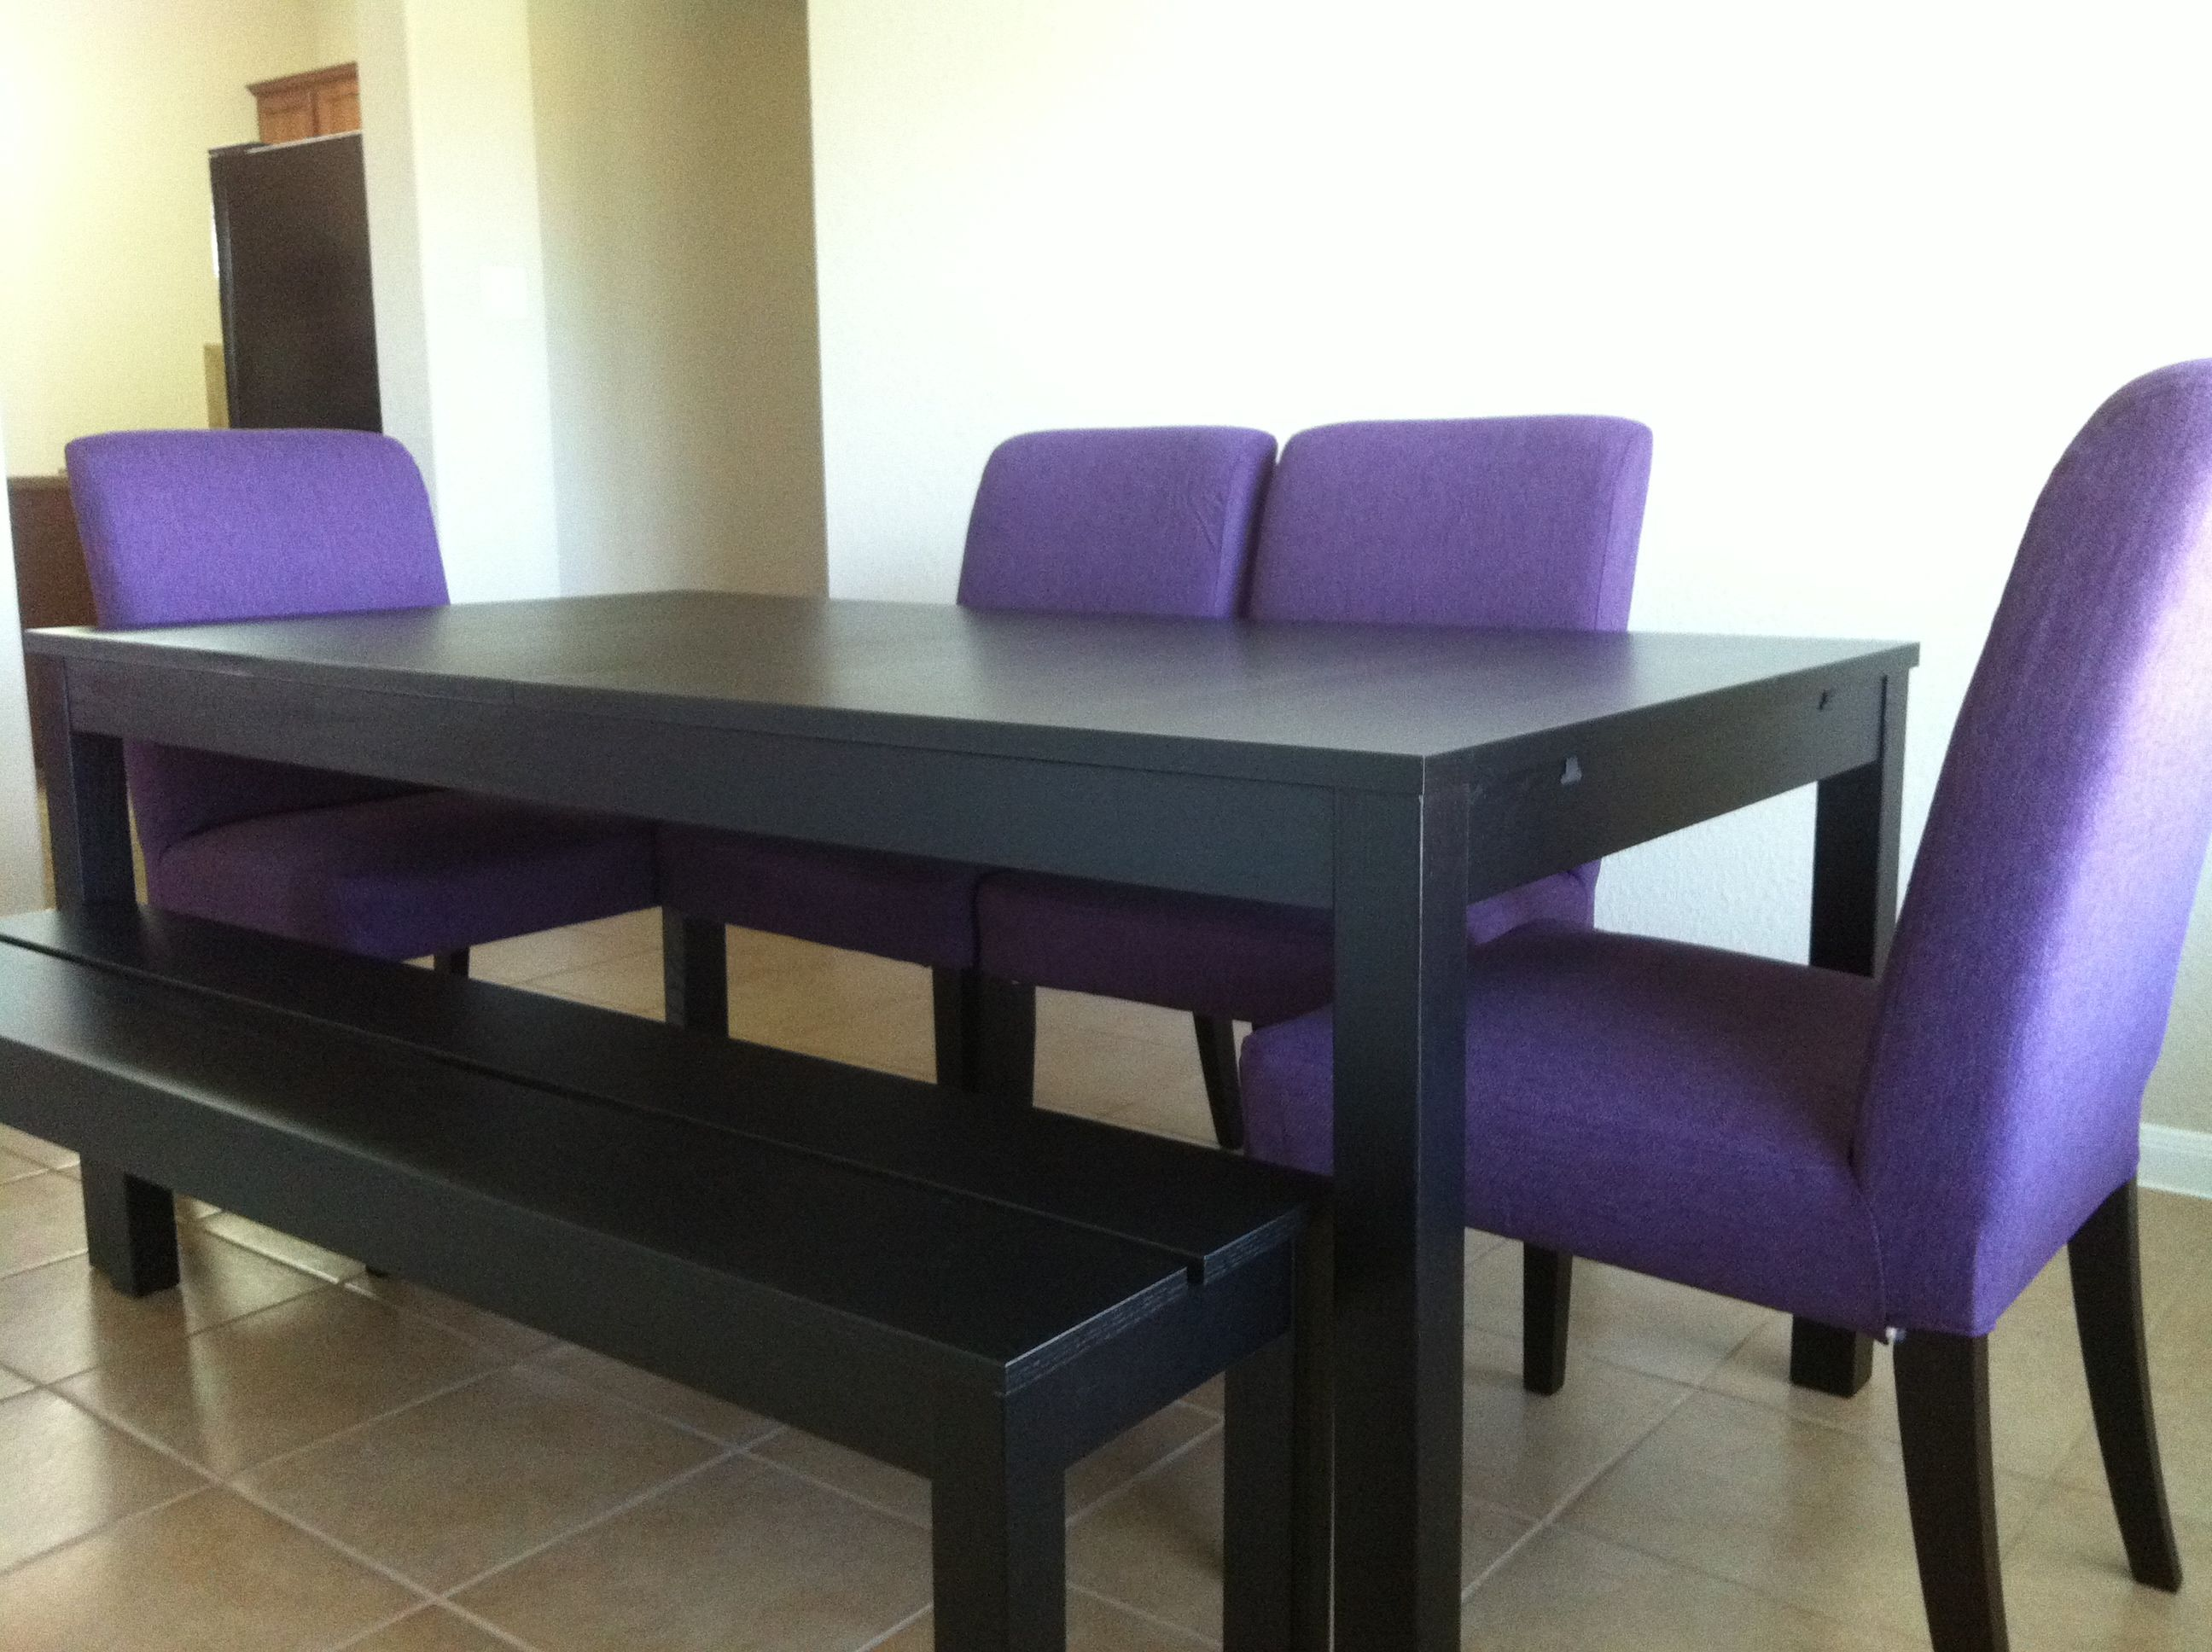 Dining Table With Bench And Chairs Dining Set From Ikea Bjursta Table And Bench And